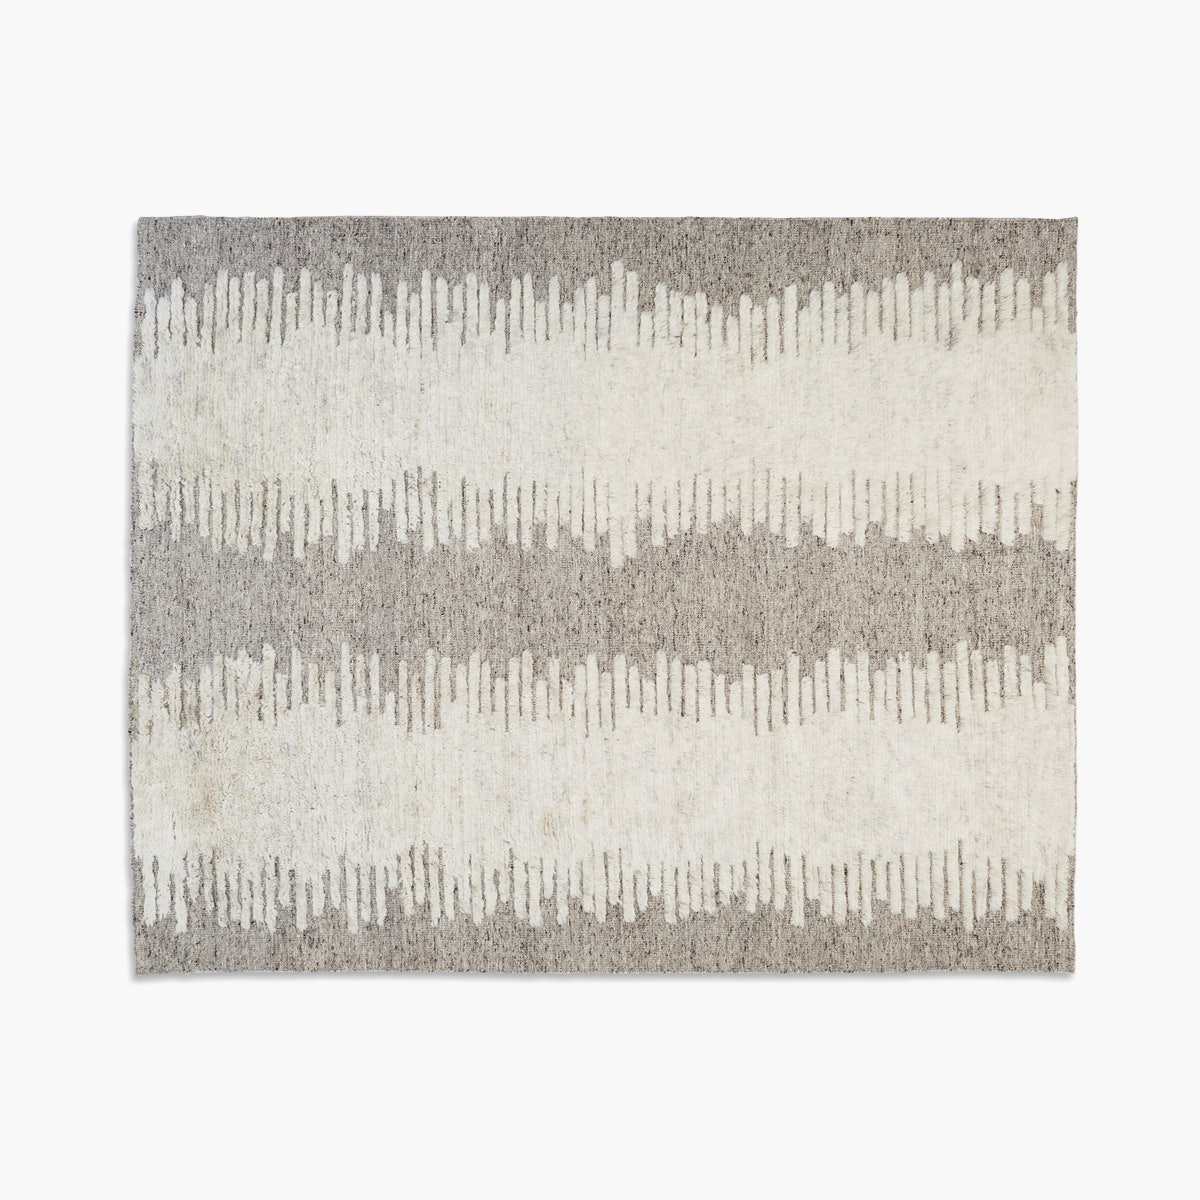 Dor Handknotted Moroccan Wool Rug